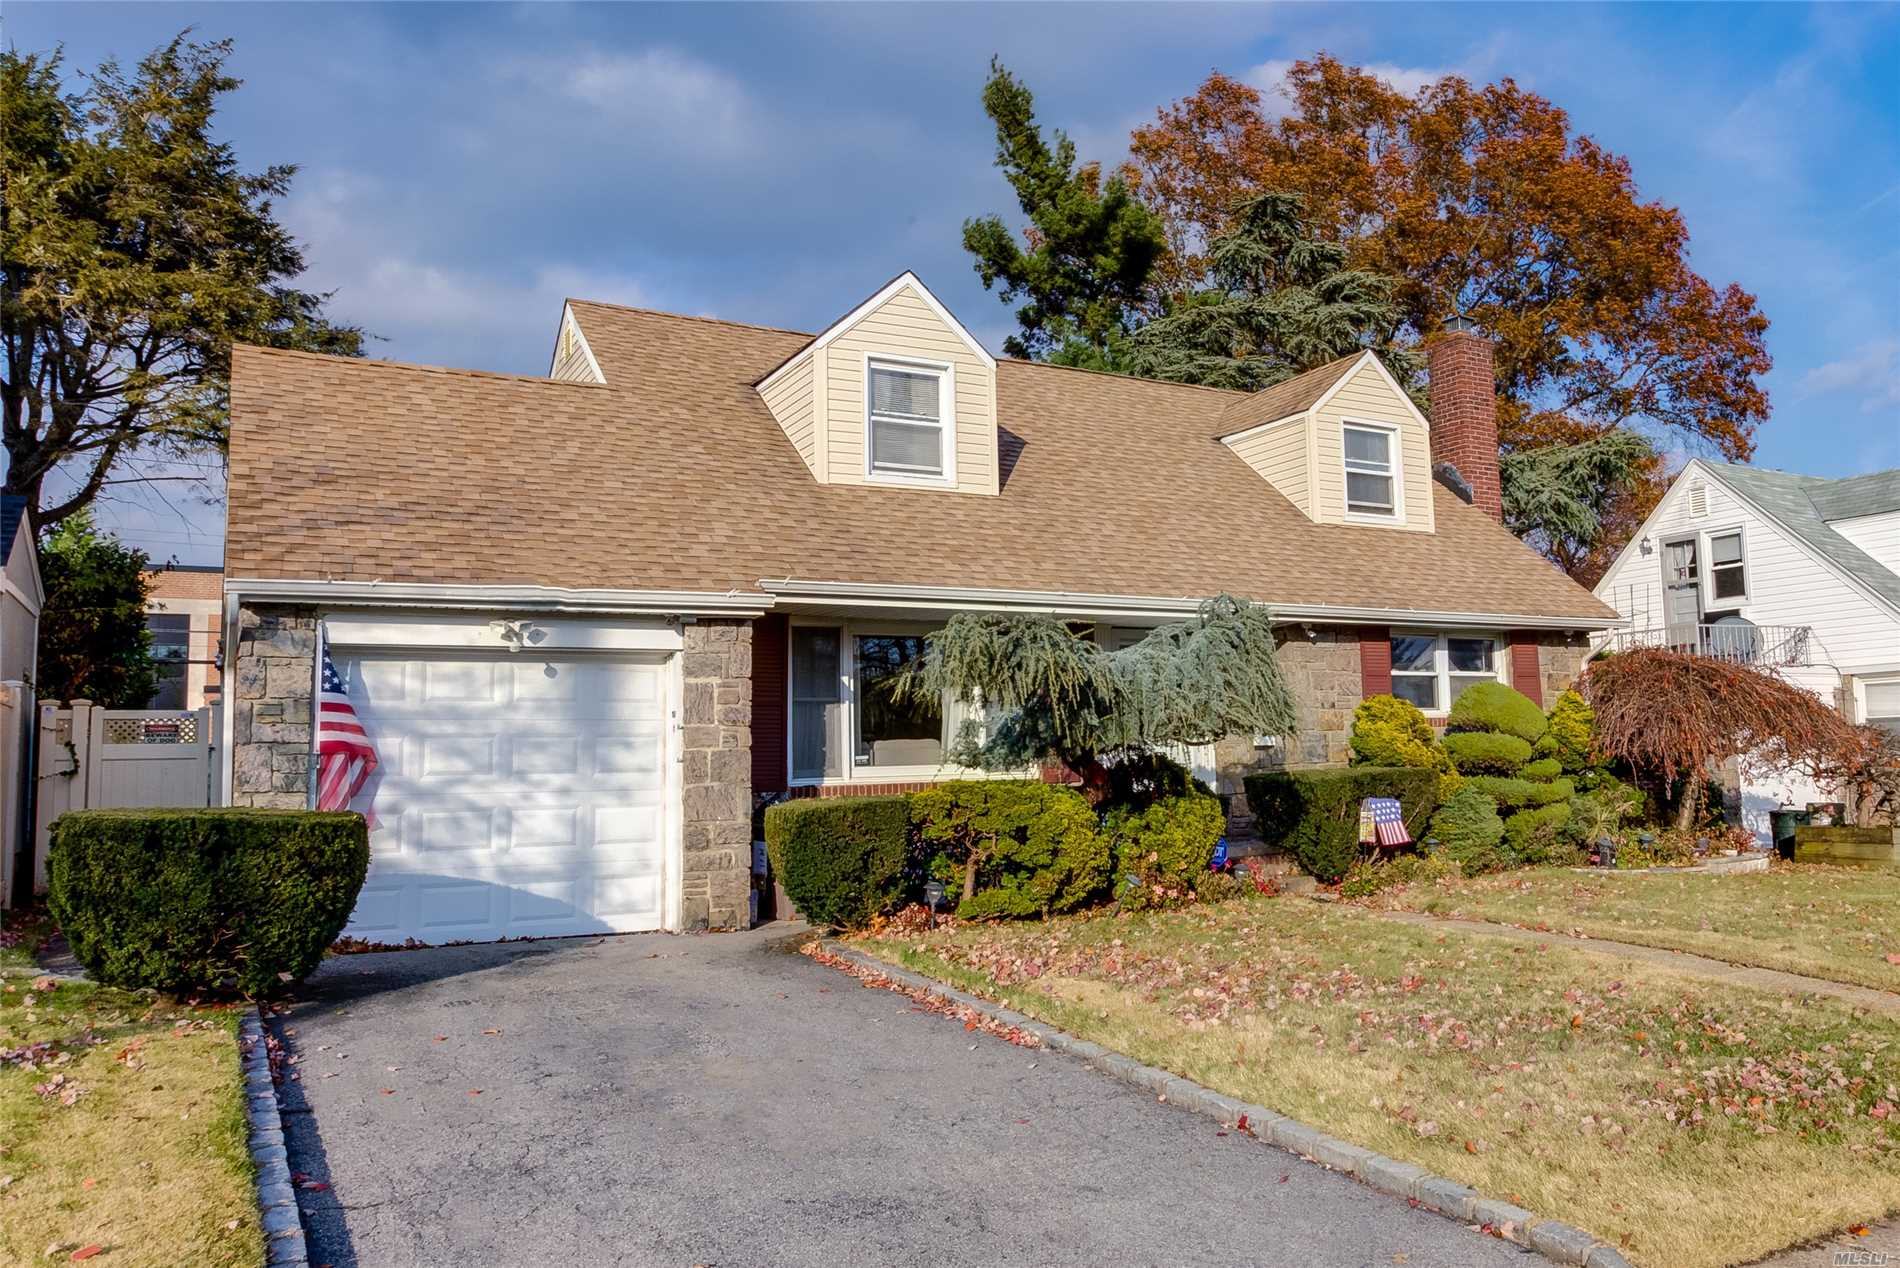 4 Bedroom Cape W/ Renovated Bathrooms. Kitchen Is Open To Main Floor Enclosed And Heated Sunporch/Den. X-Lg Landscaped And Fenced Yard W/Large Patio. Motivated Sellers And Low Taxes!